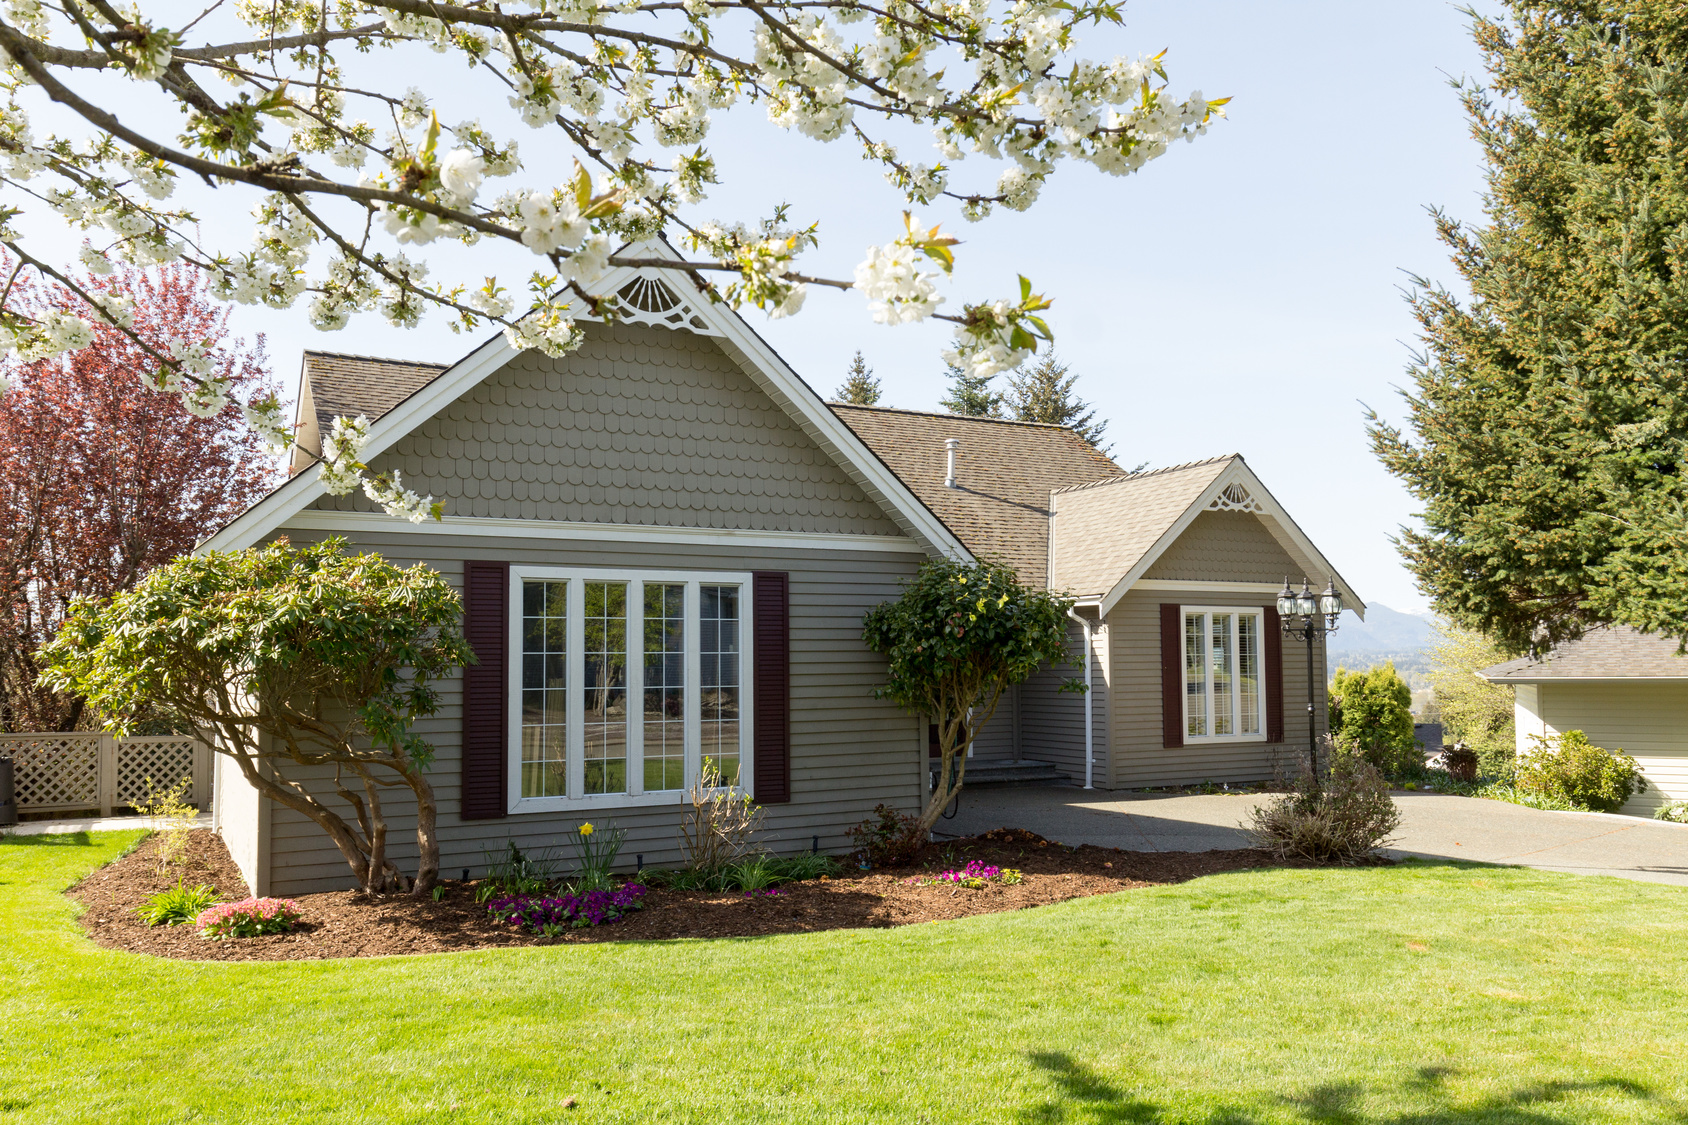 ranch-style-home-wood-siding